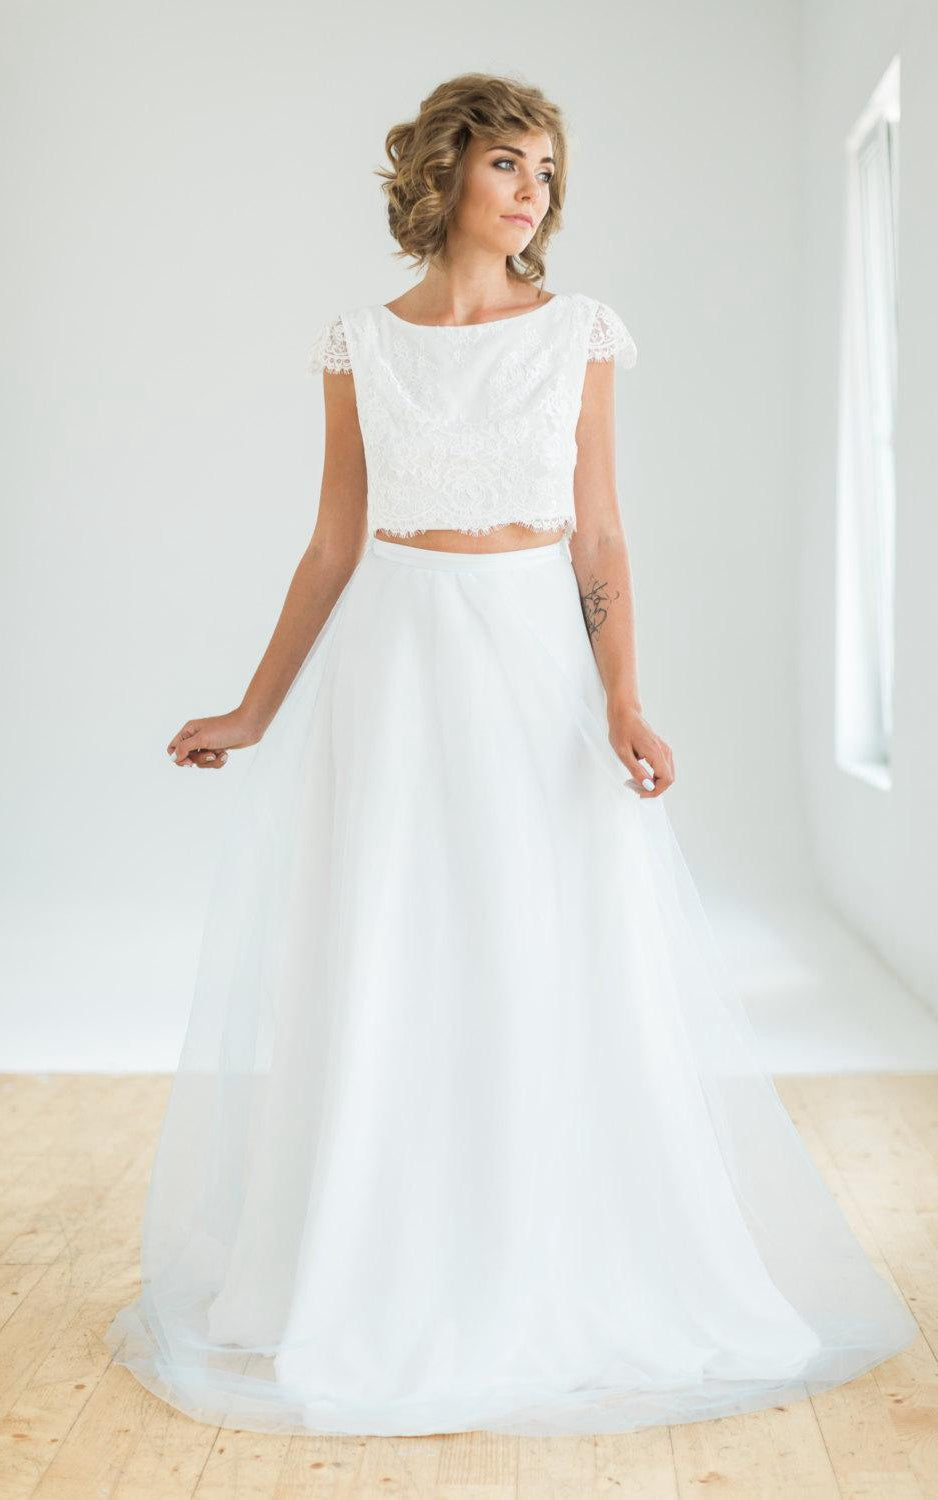 Crop Top Two Piece Wedding With Lace Top And Flowing Blue Skirt Dress